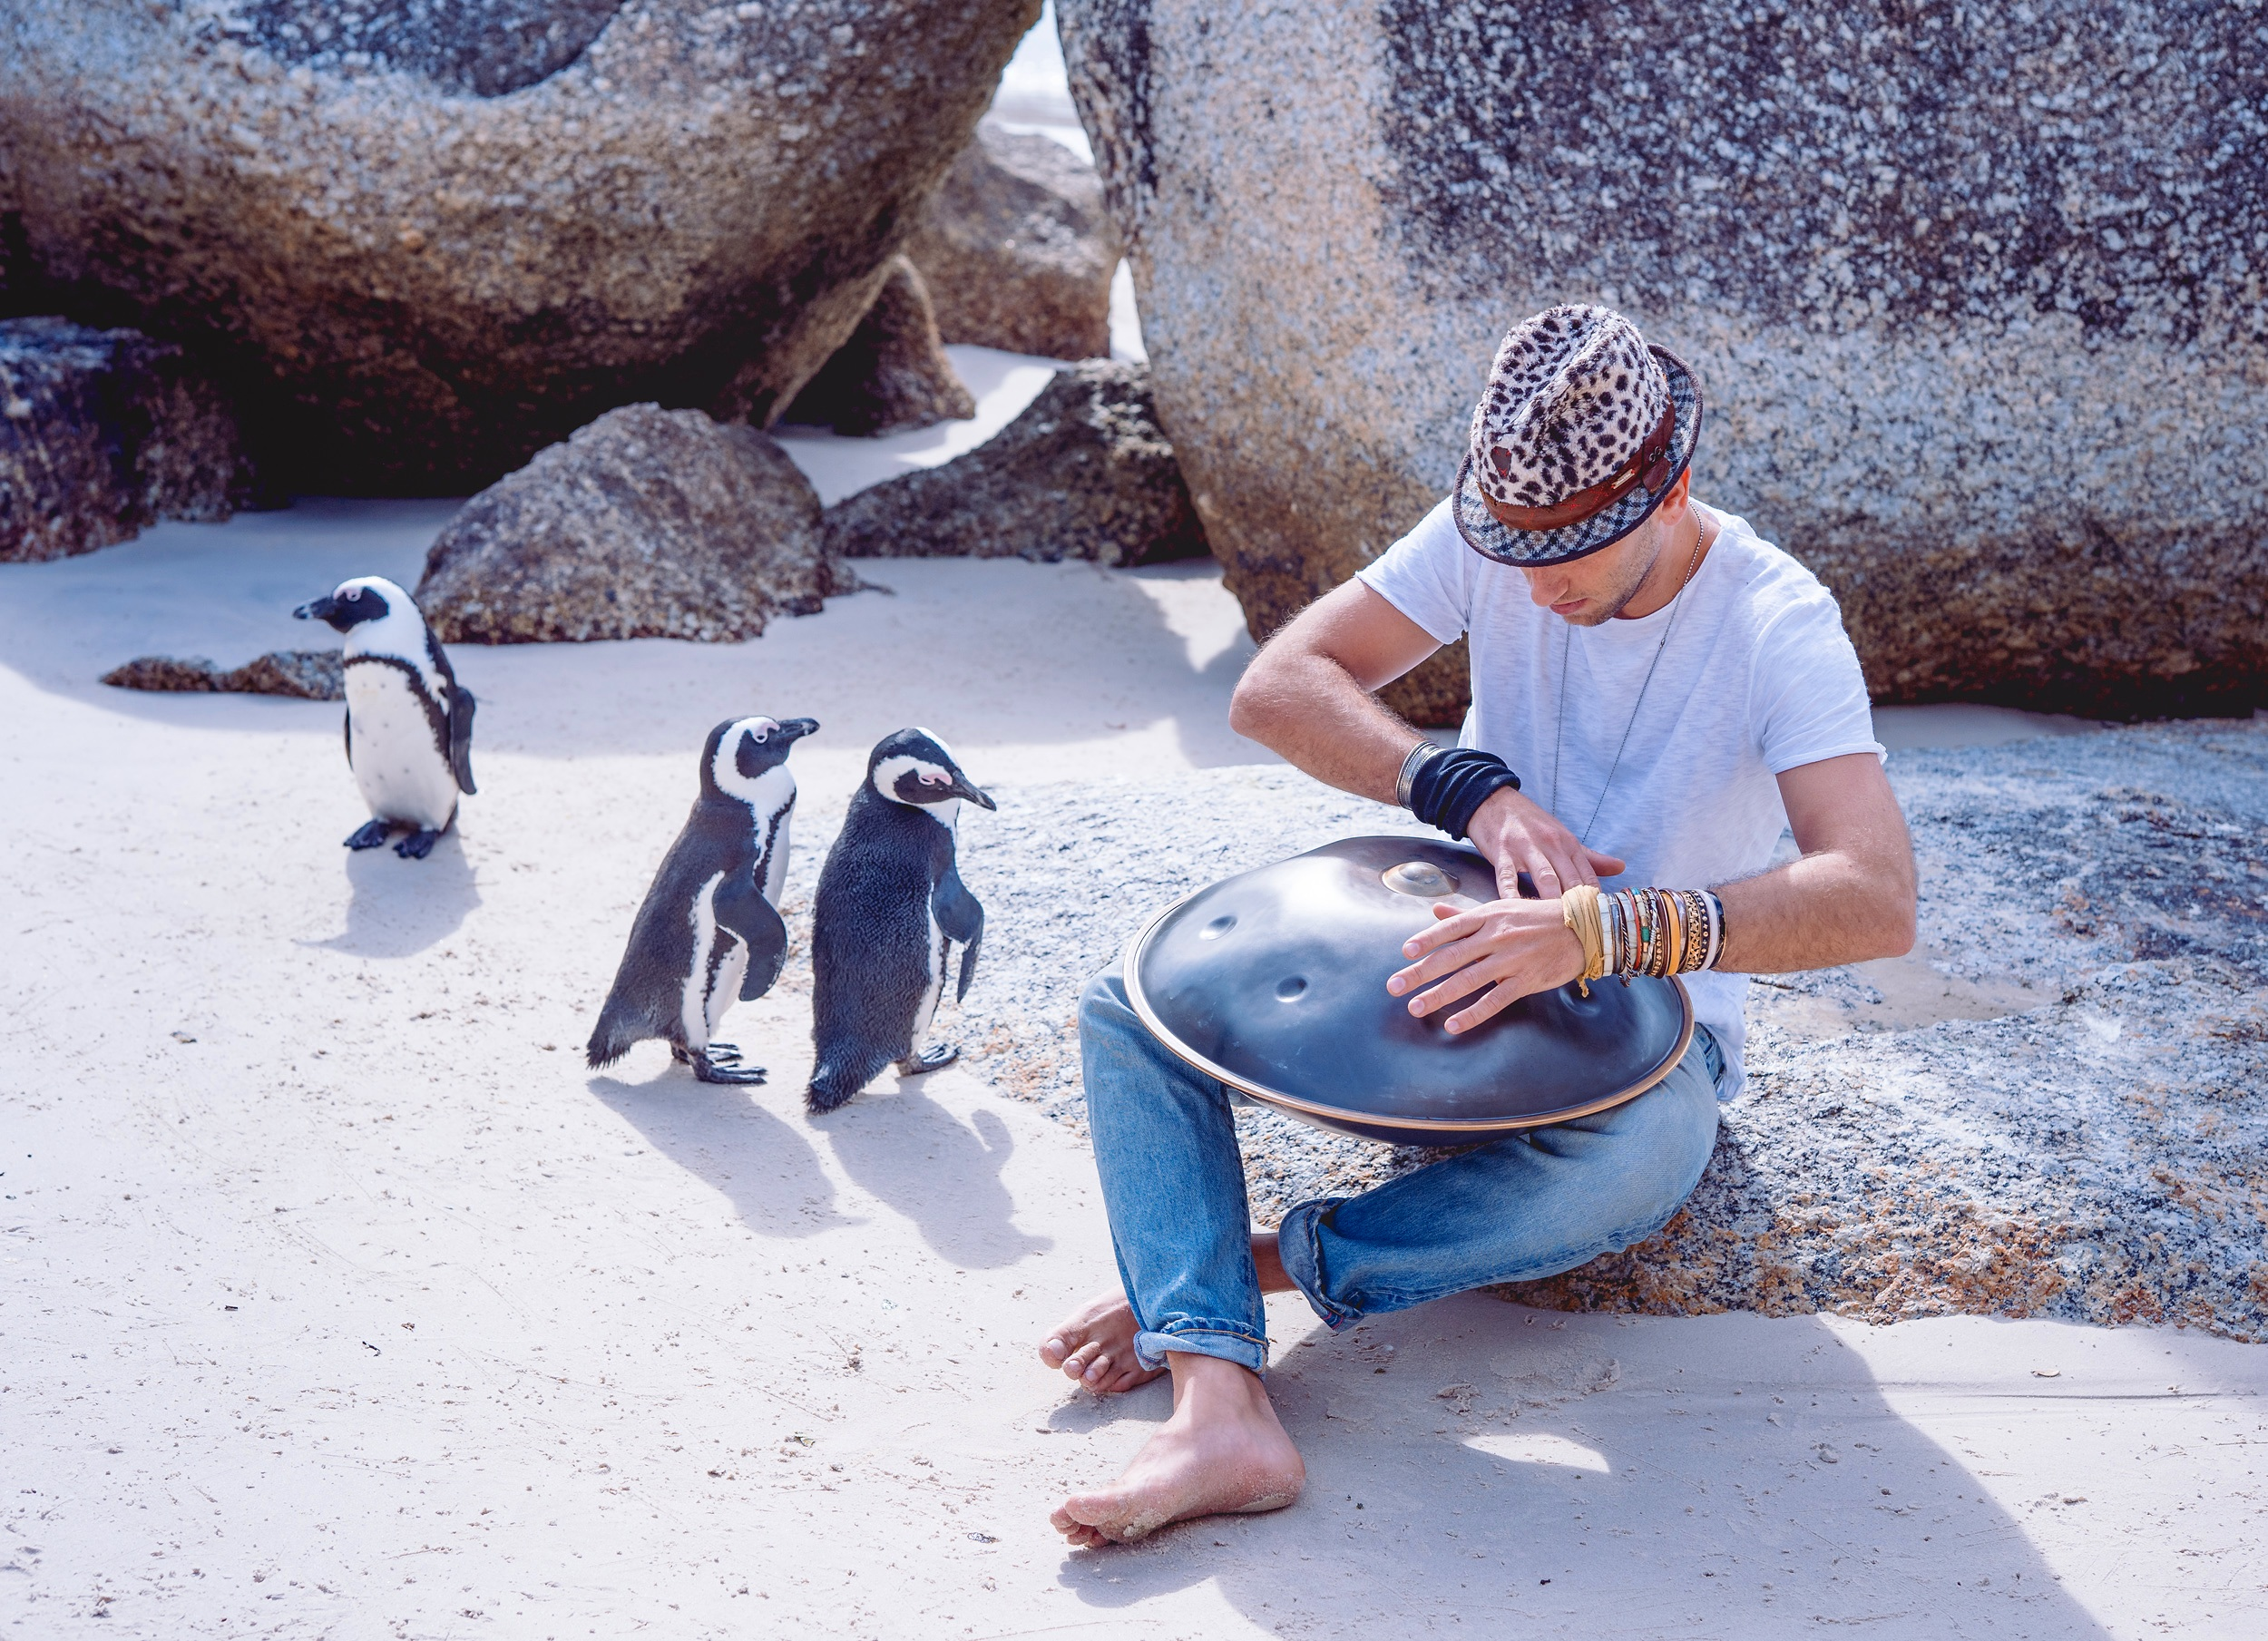 Marco Selvaggio - Boulders Beach Simonstown, Cape Town South Africa - Image by Ken Treloar Photography 2019-6.jpg